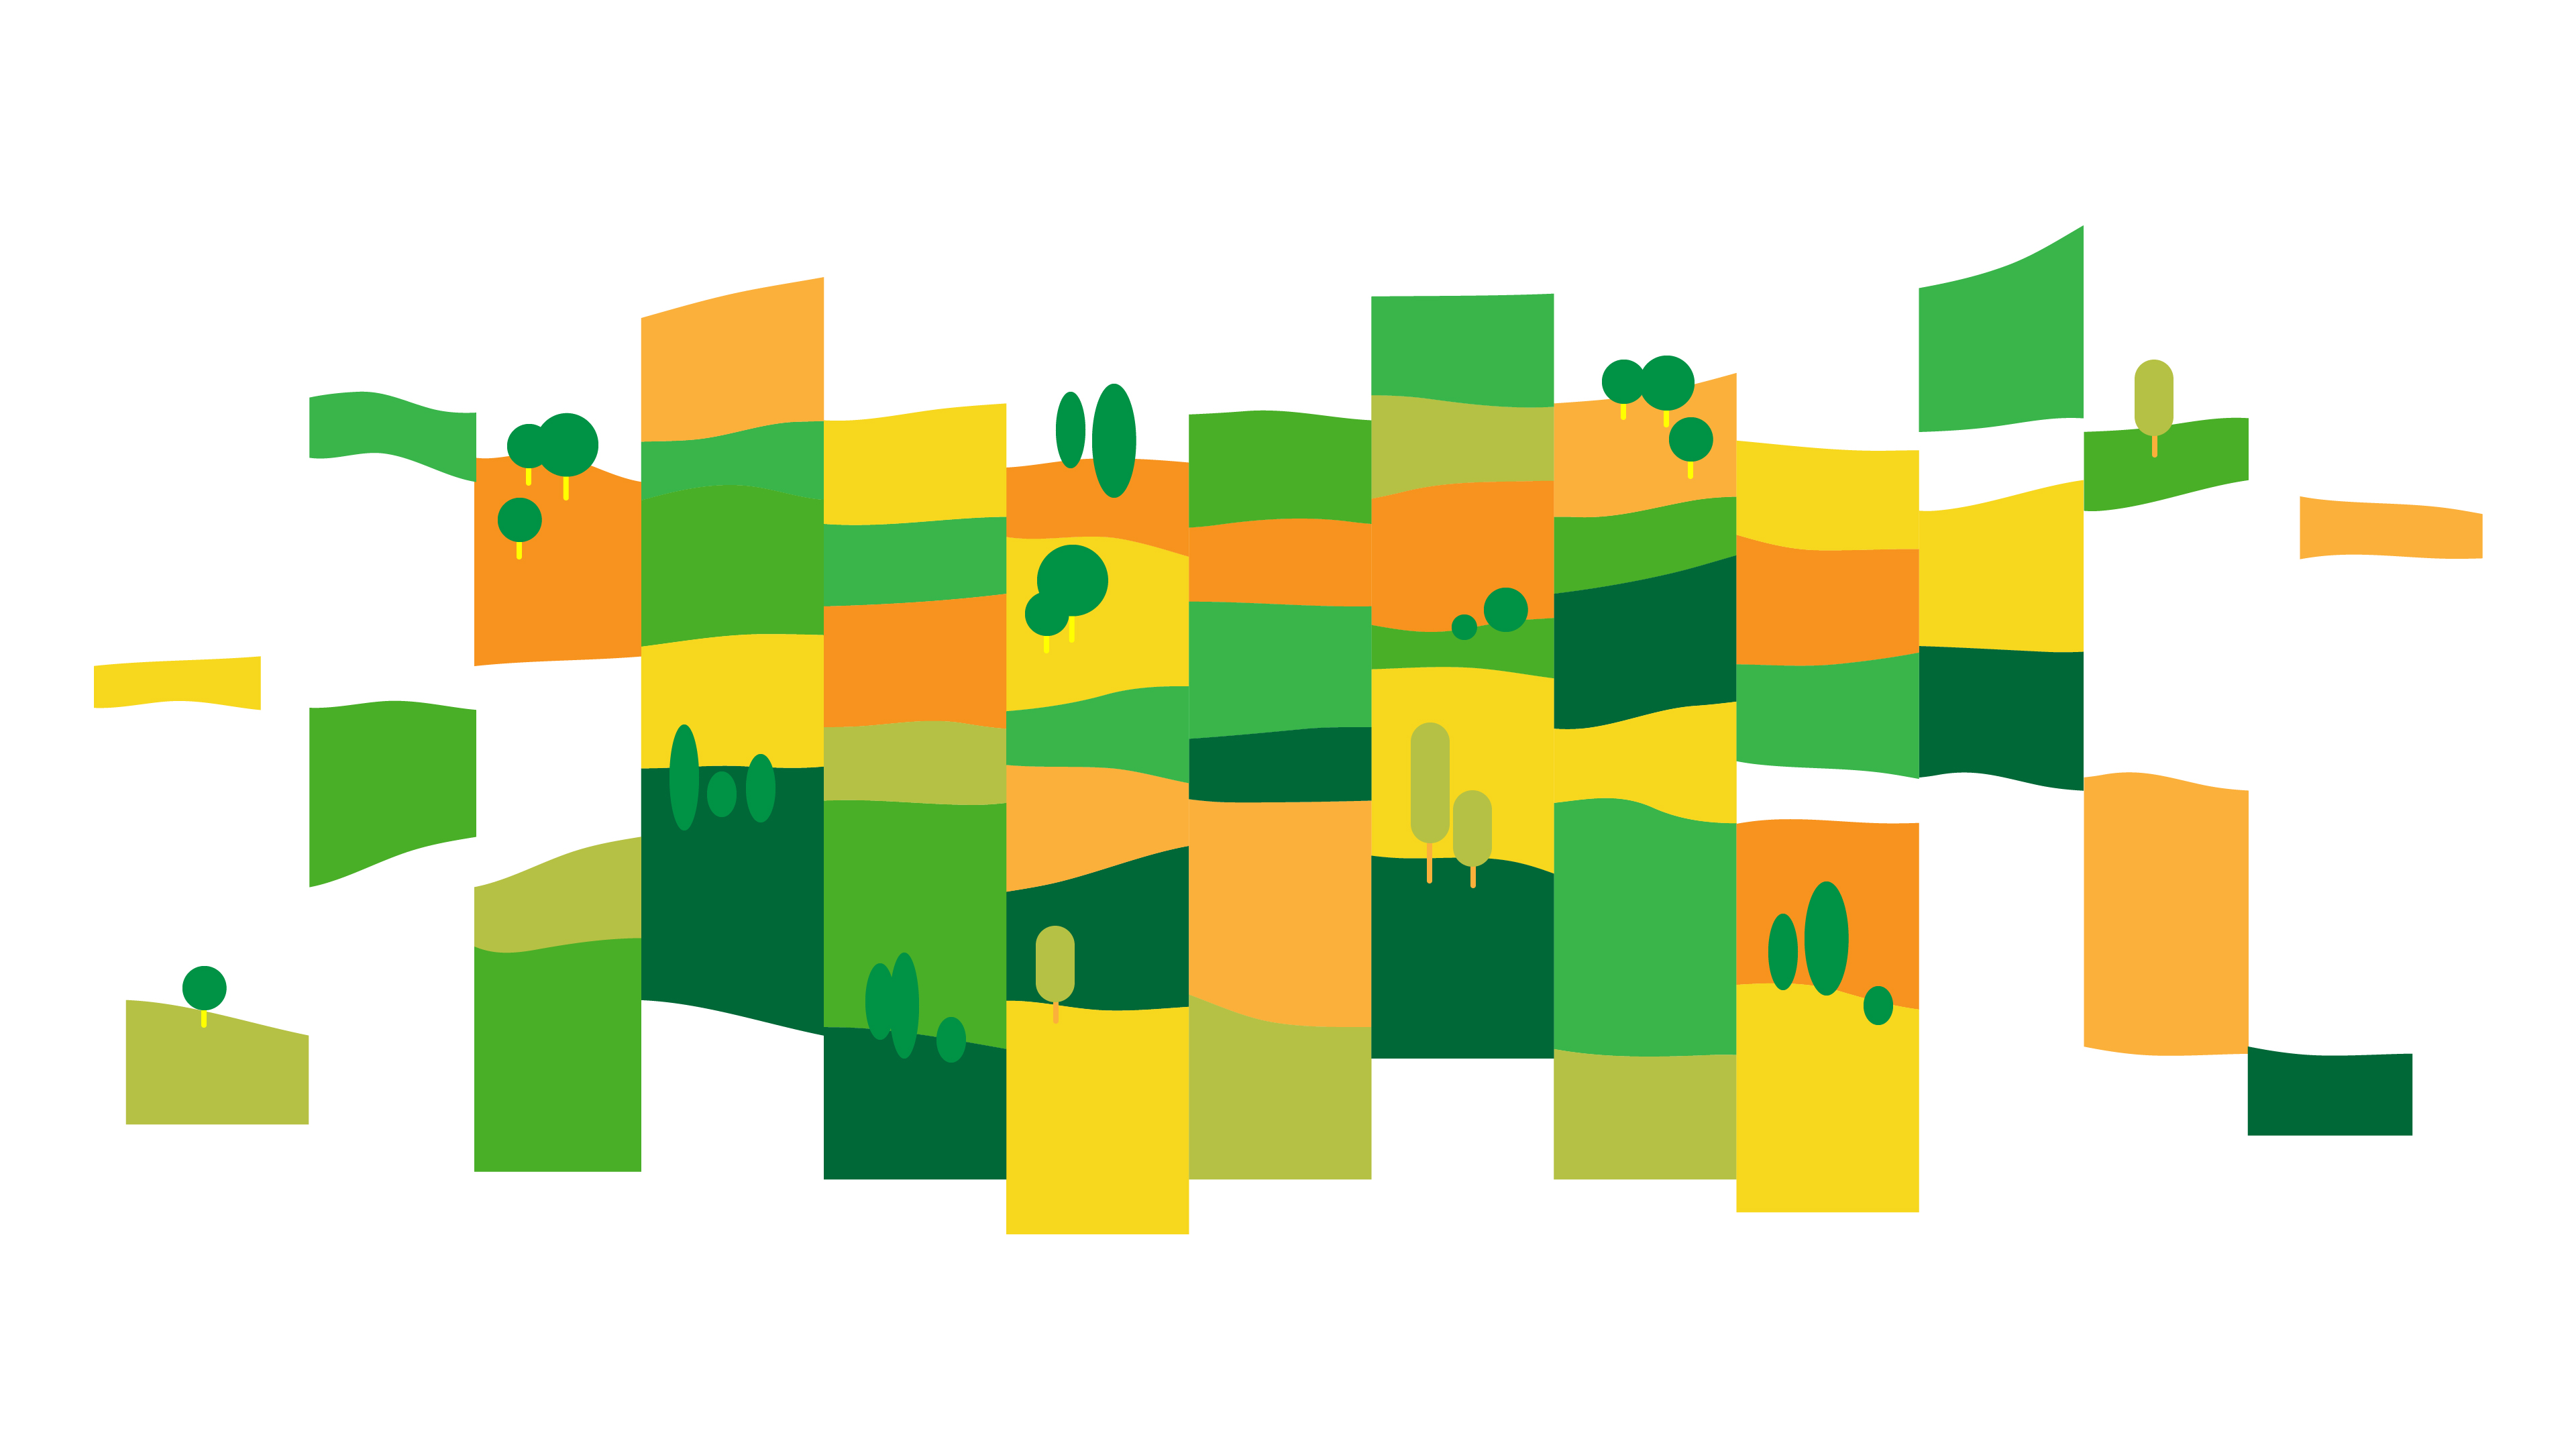 Simple illustration of a colorful landscape, cut up into different fields to represent the division of natural spaces.